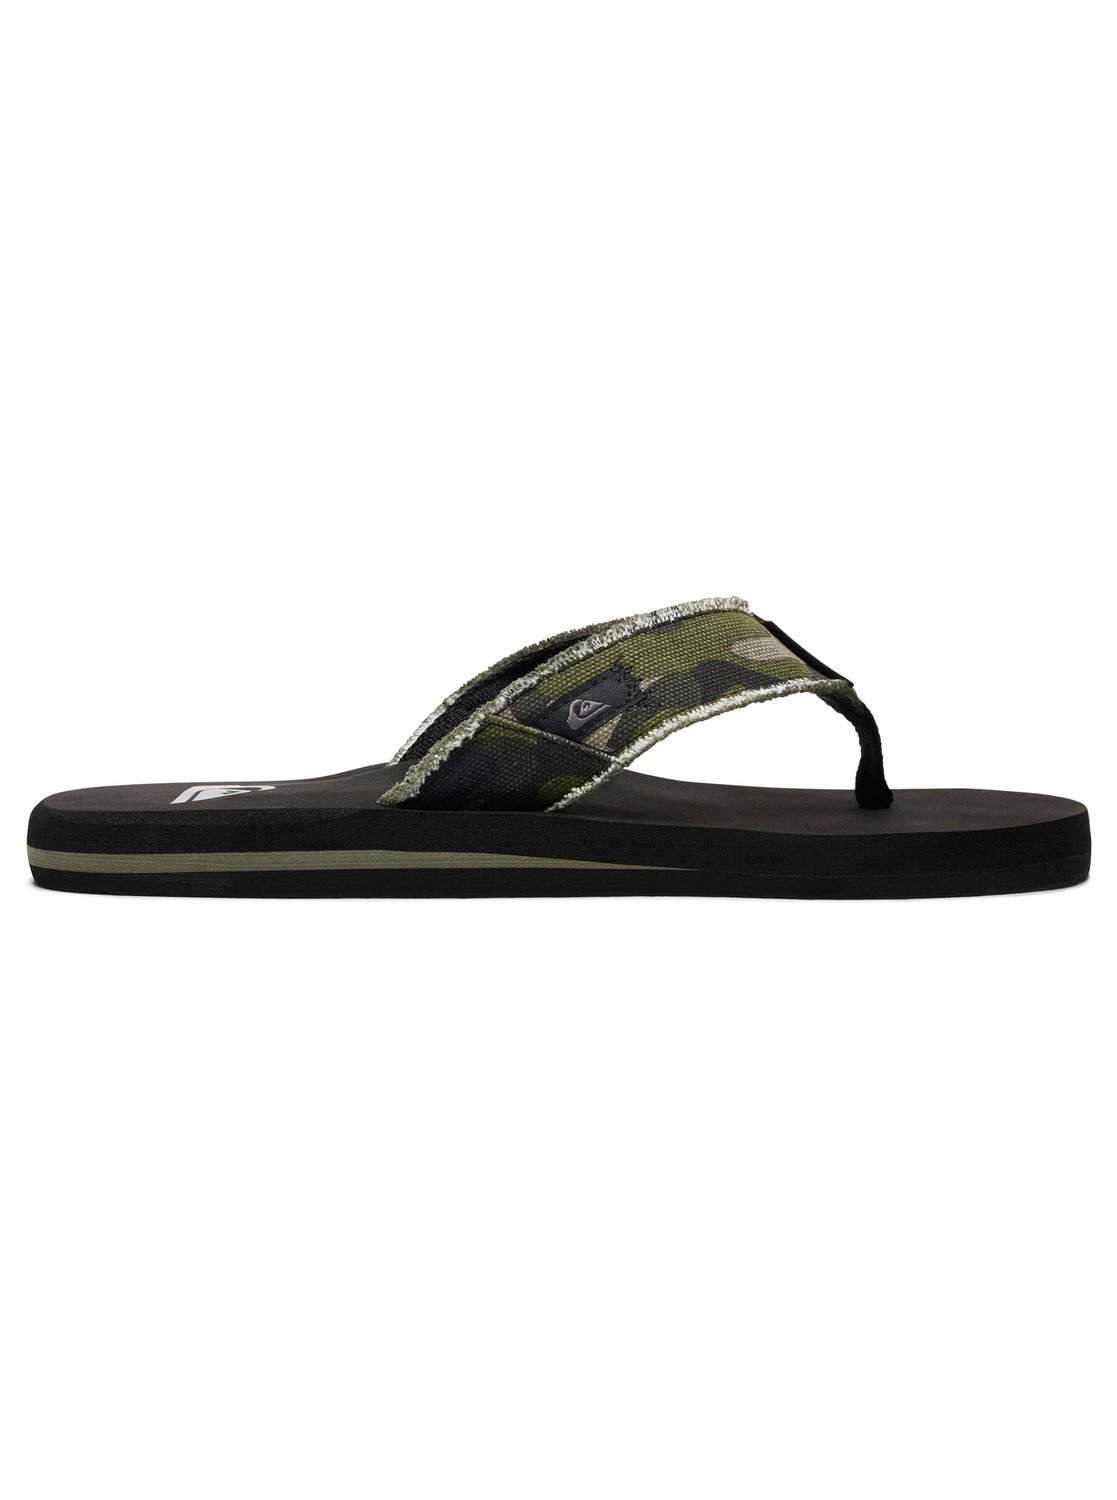 Quiksilver Monkey Abyss- Brown sandals